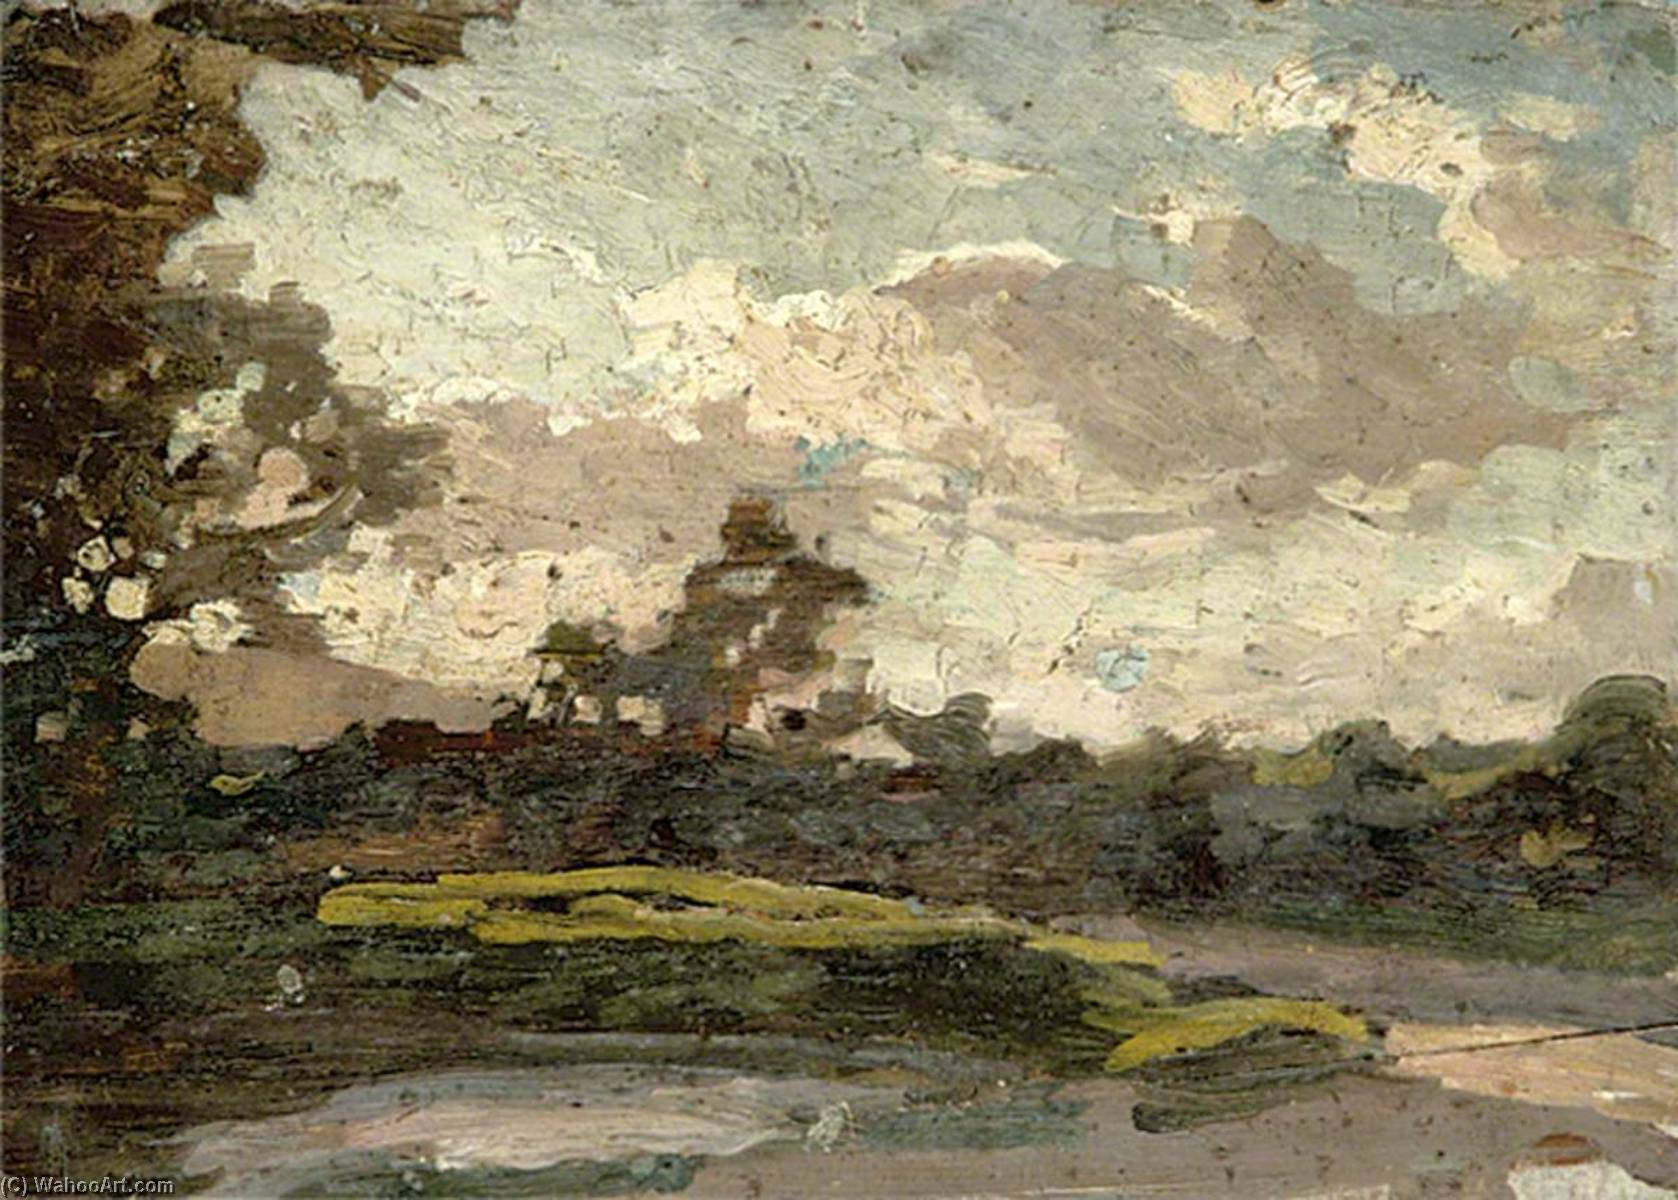 Landscape with a Pond in the Foreground, Large Tree on the Left by Gunning King | Reproductions Gunning King | ArtsDot.com